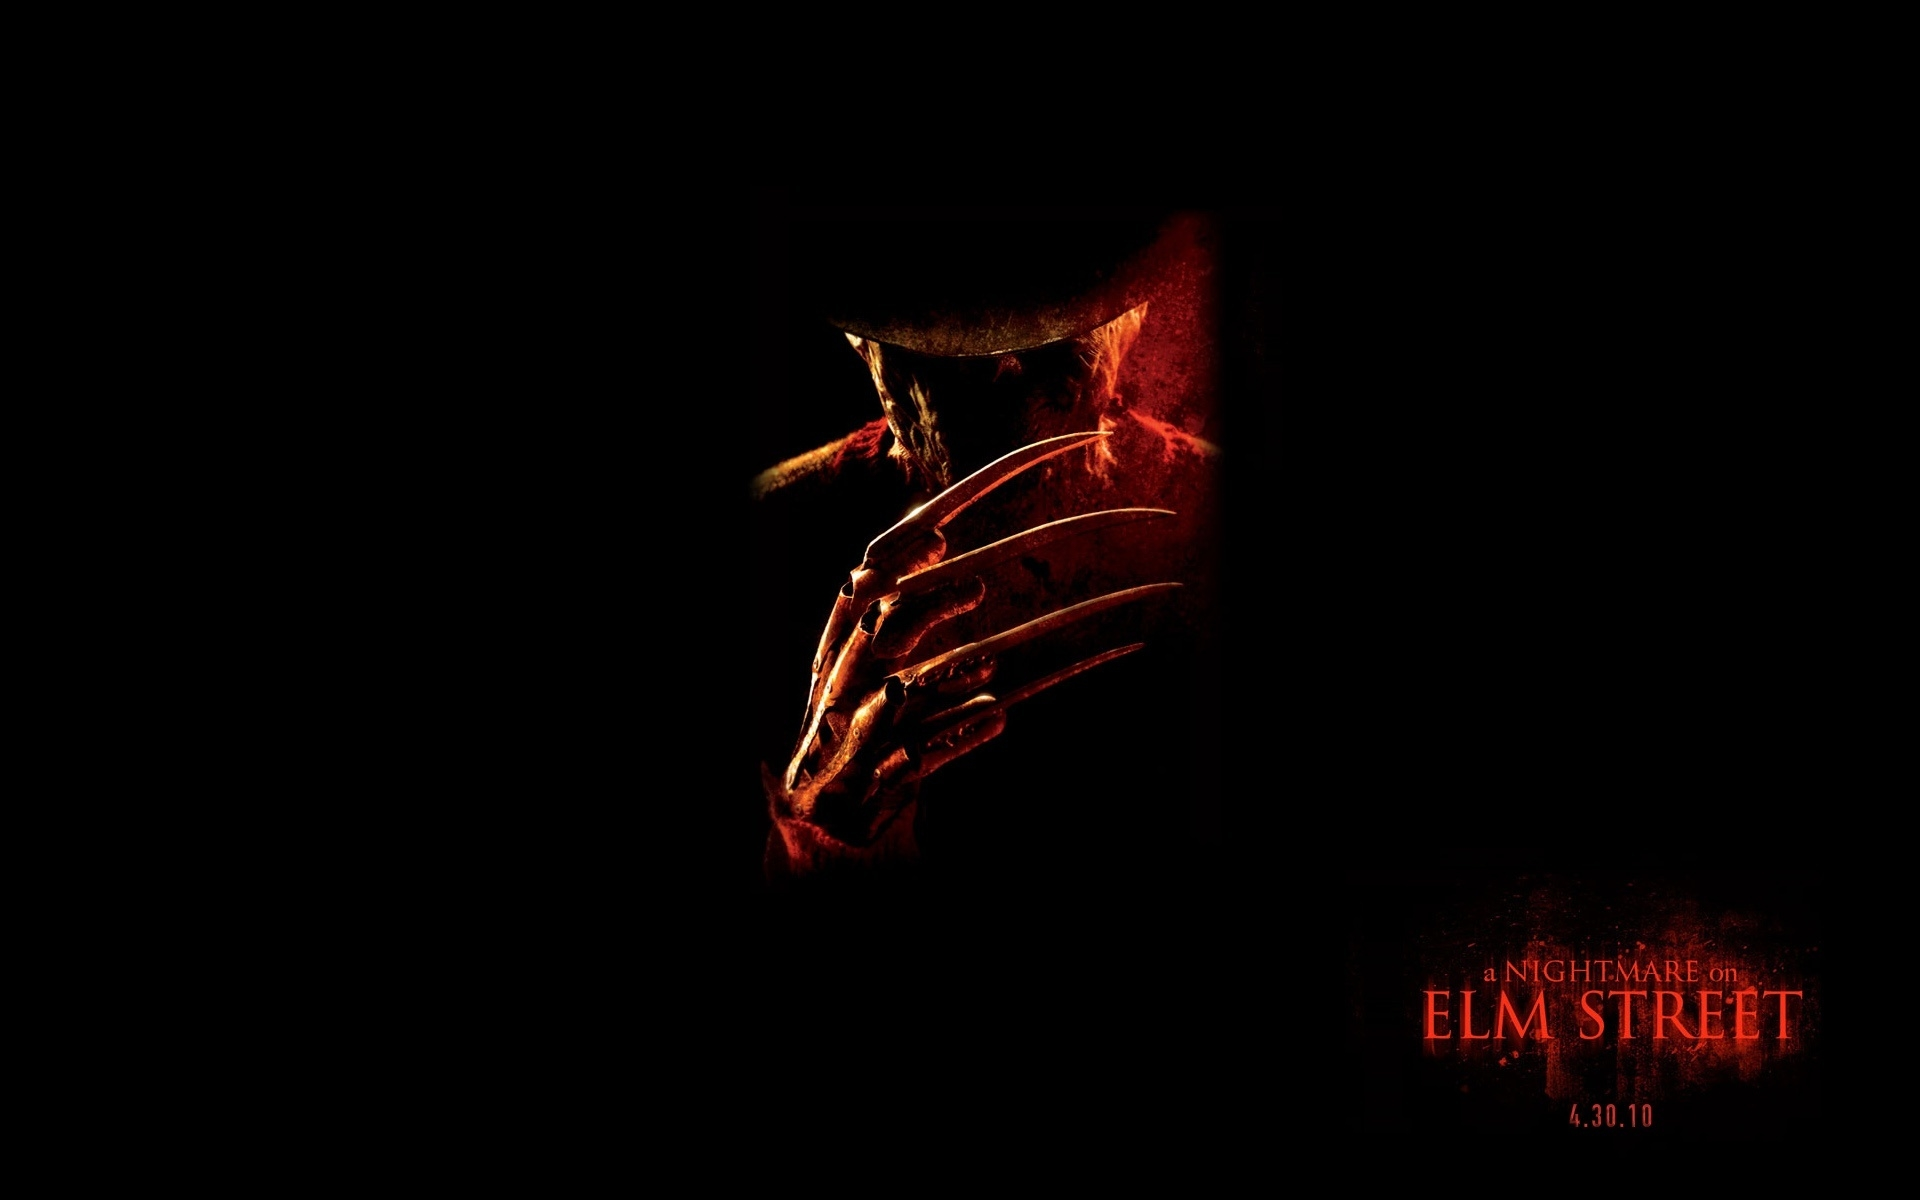 A Nightmare on Elm Street 2010 for 1920 x 1200 widescreen resolution